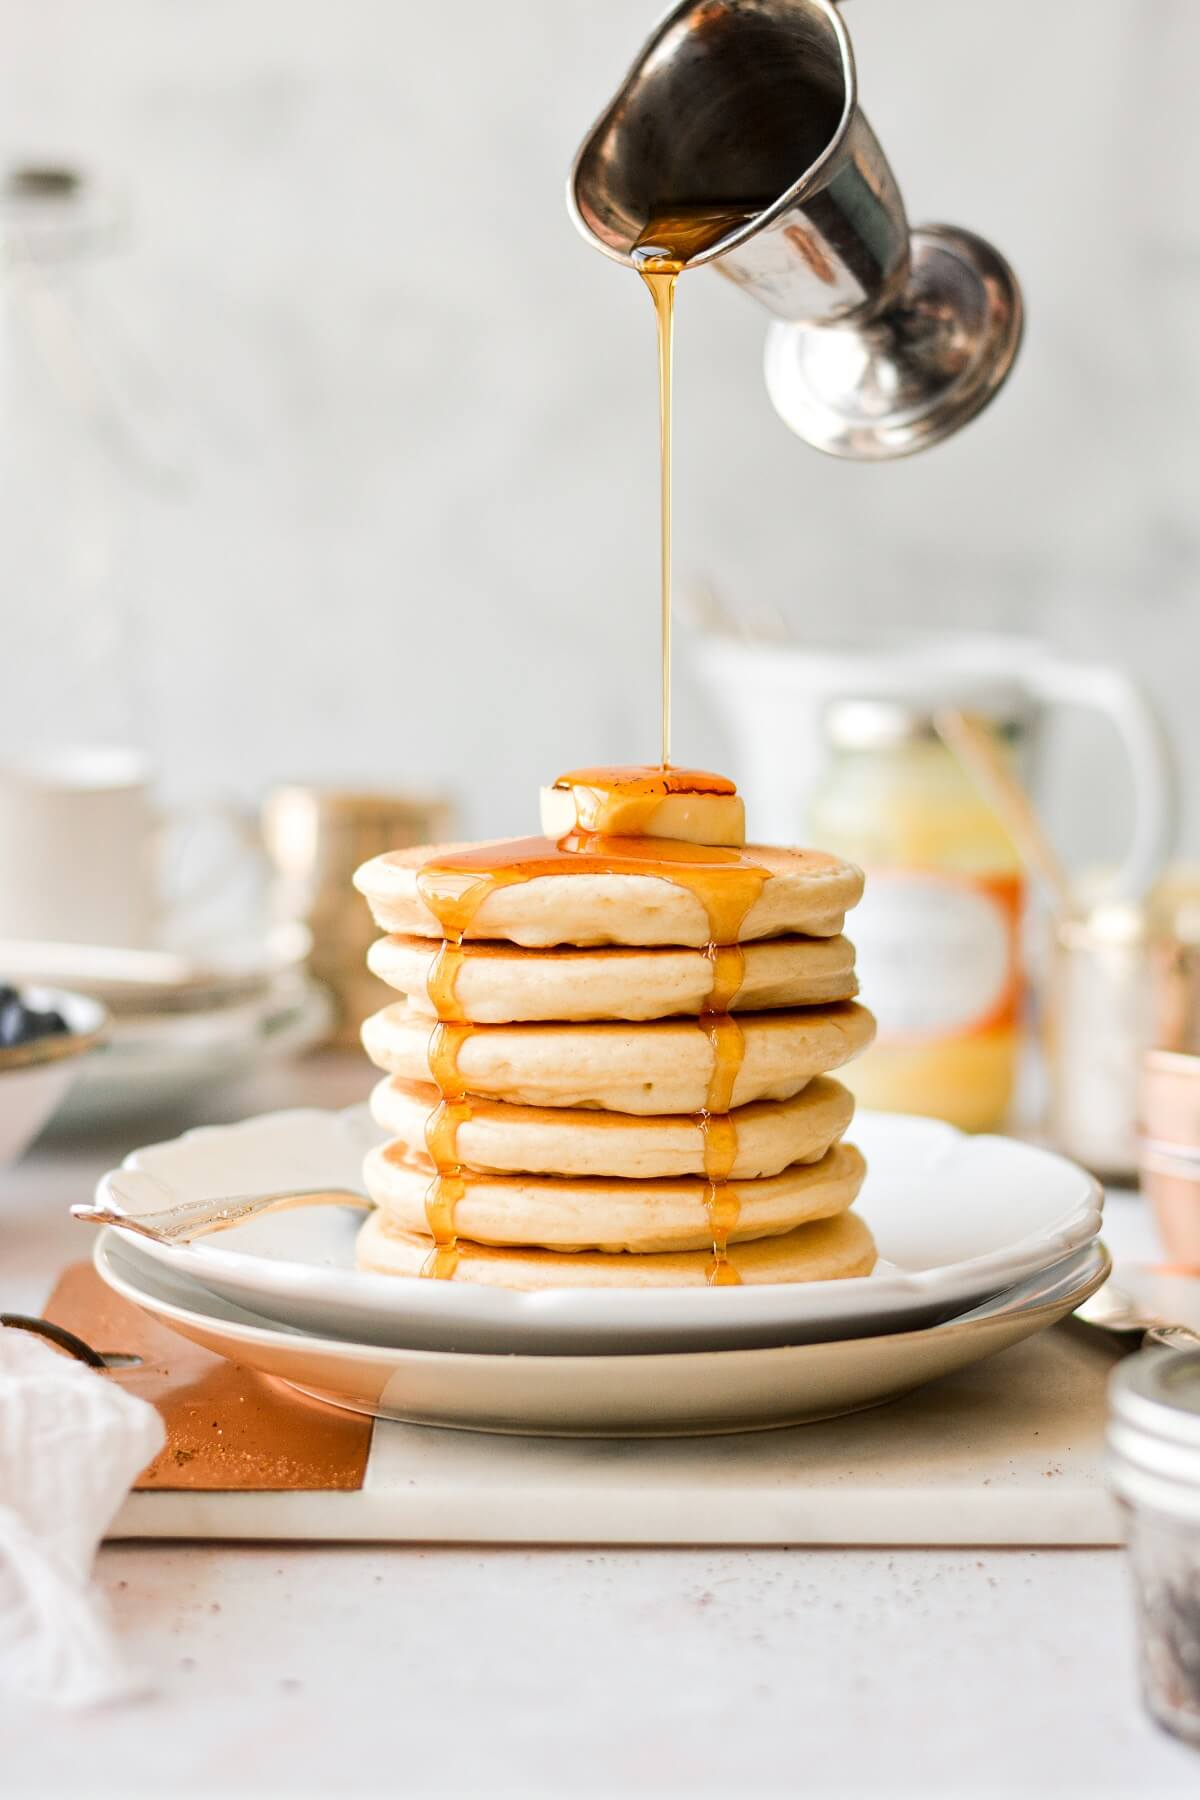 A stack of classic fluffy pancakes, with syrup pouring on top.